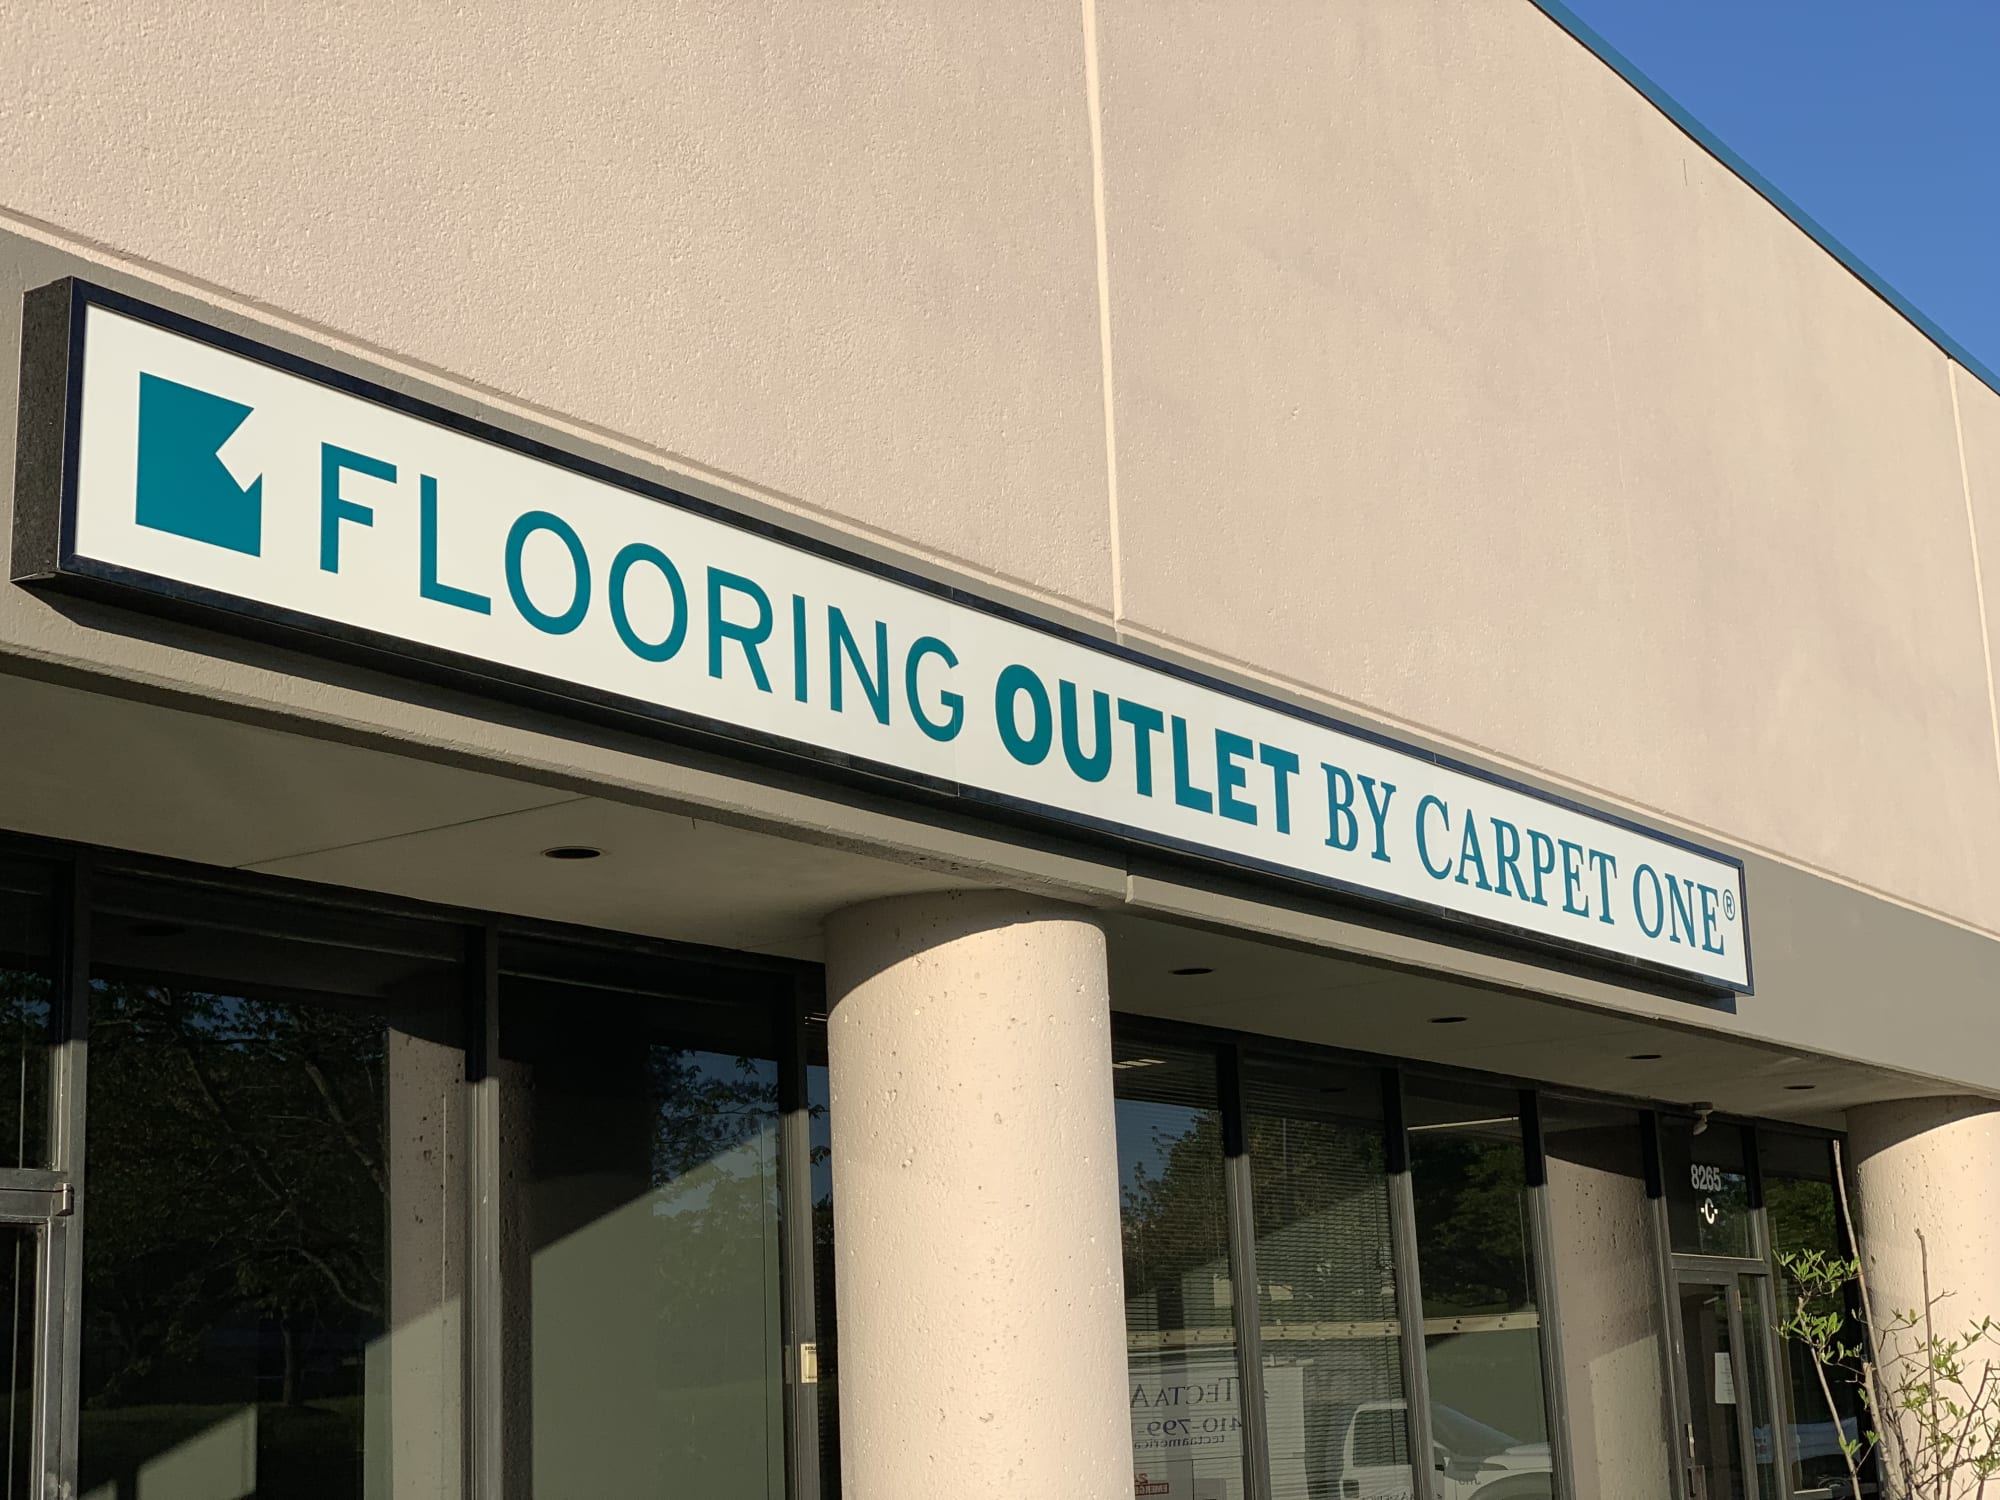 Flooring Outlet By Carpet One - 8265 Patuxent Range Rd Suite C Jessup, MD 20794